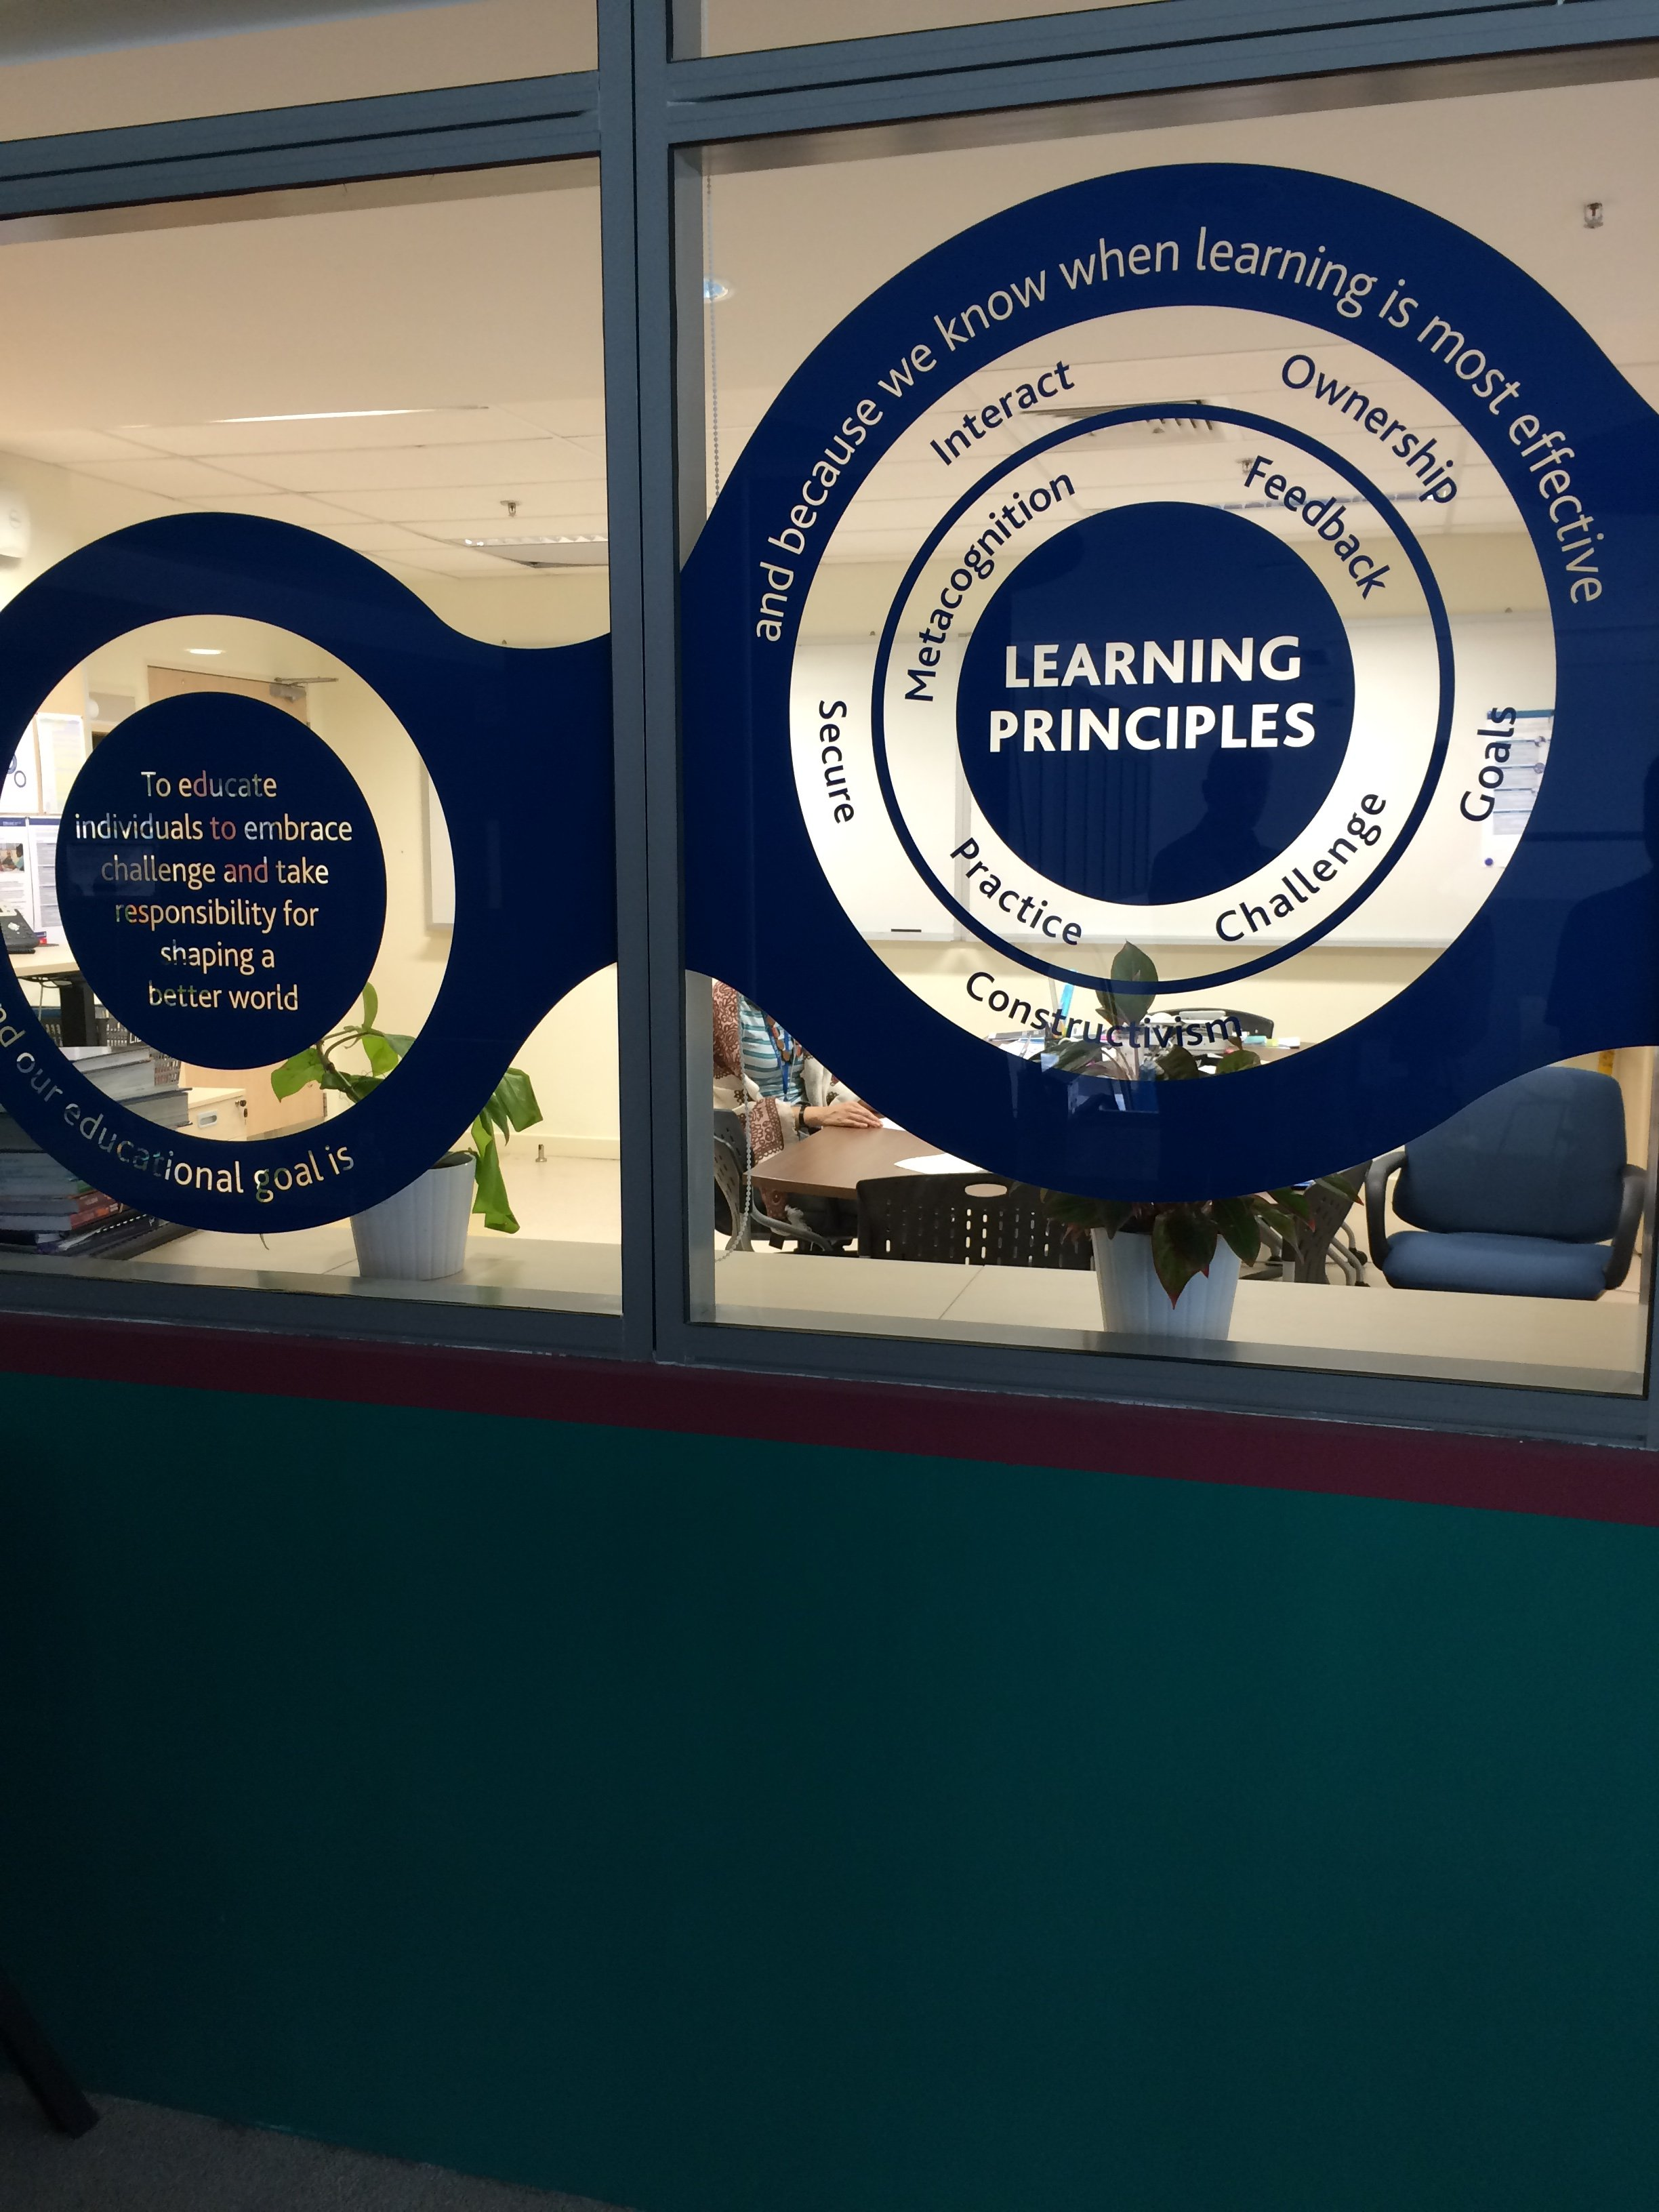 Educational Goal and Learning Principles in UWCSEA